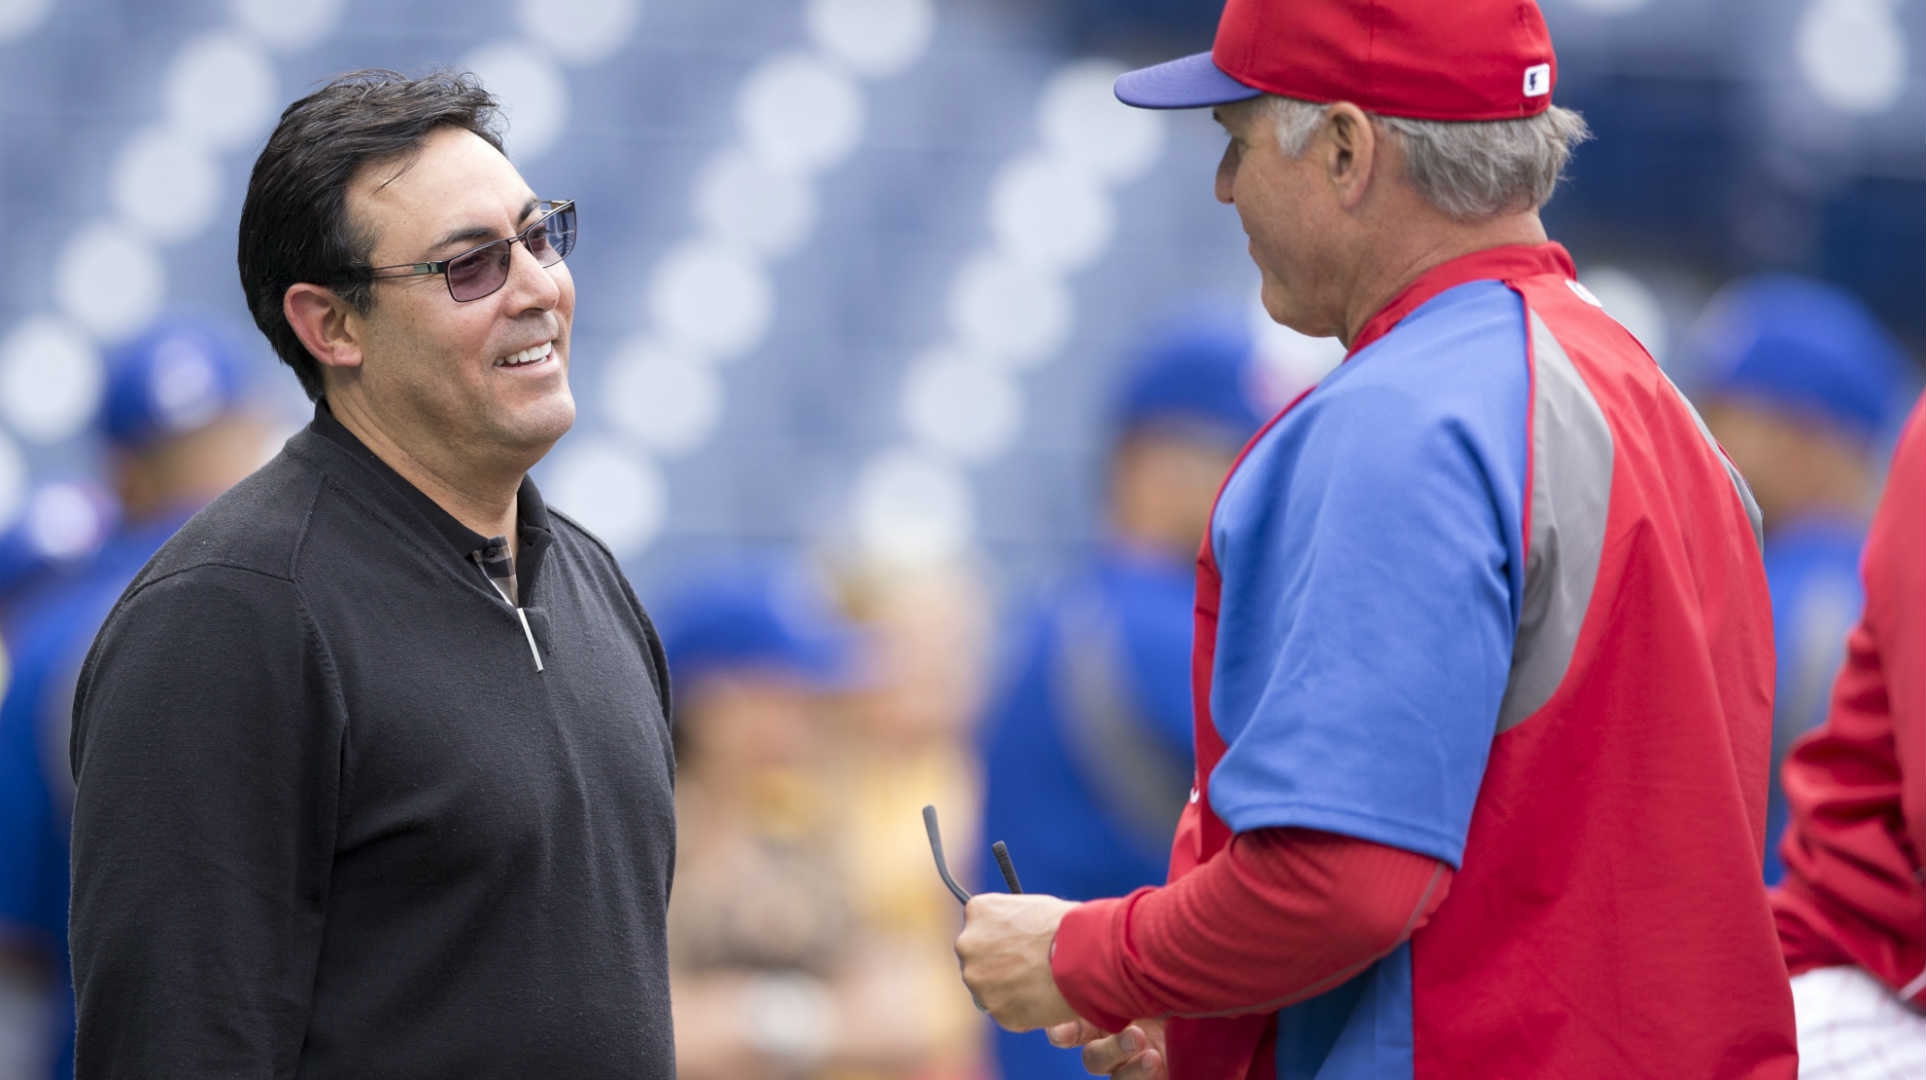 Phillies fans 'don't understand the game,' Ruben Amaro says